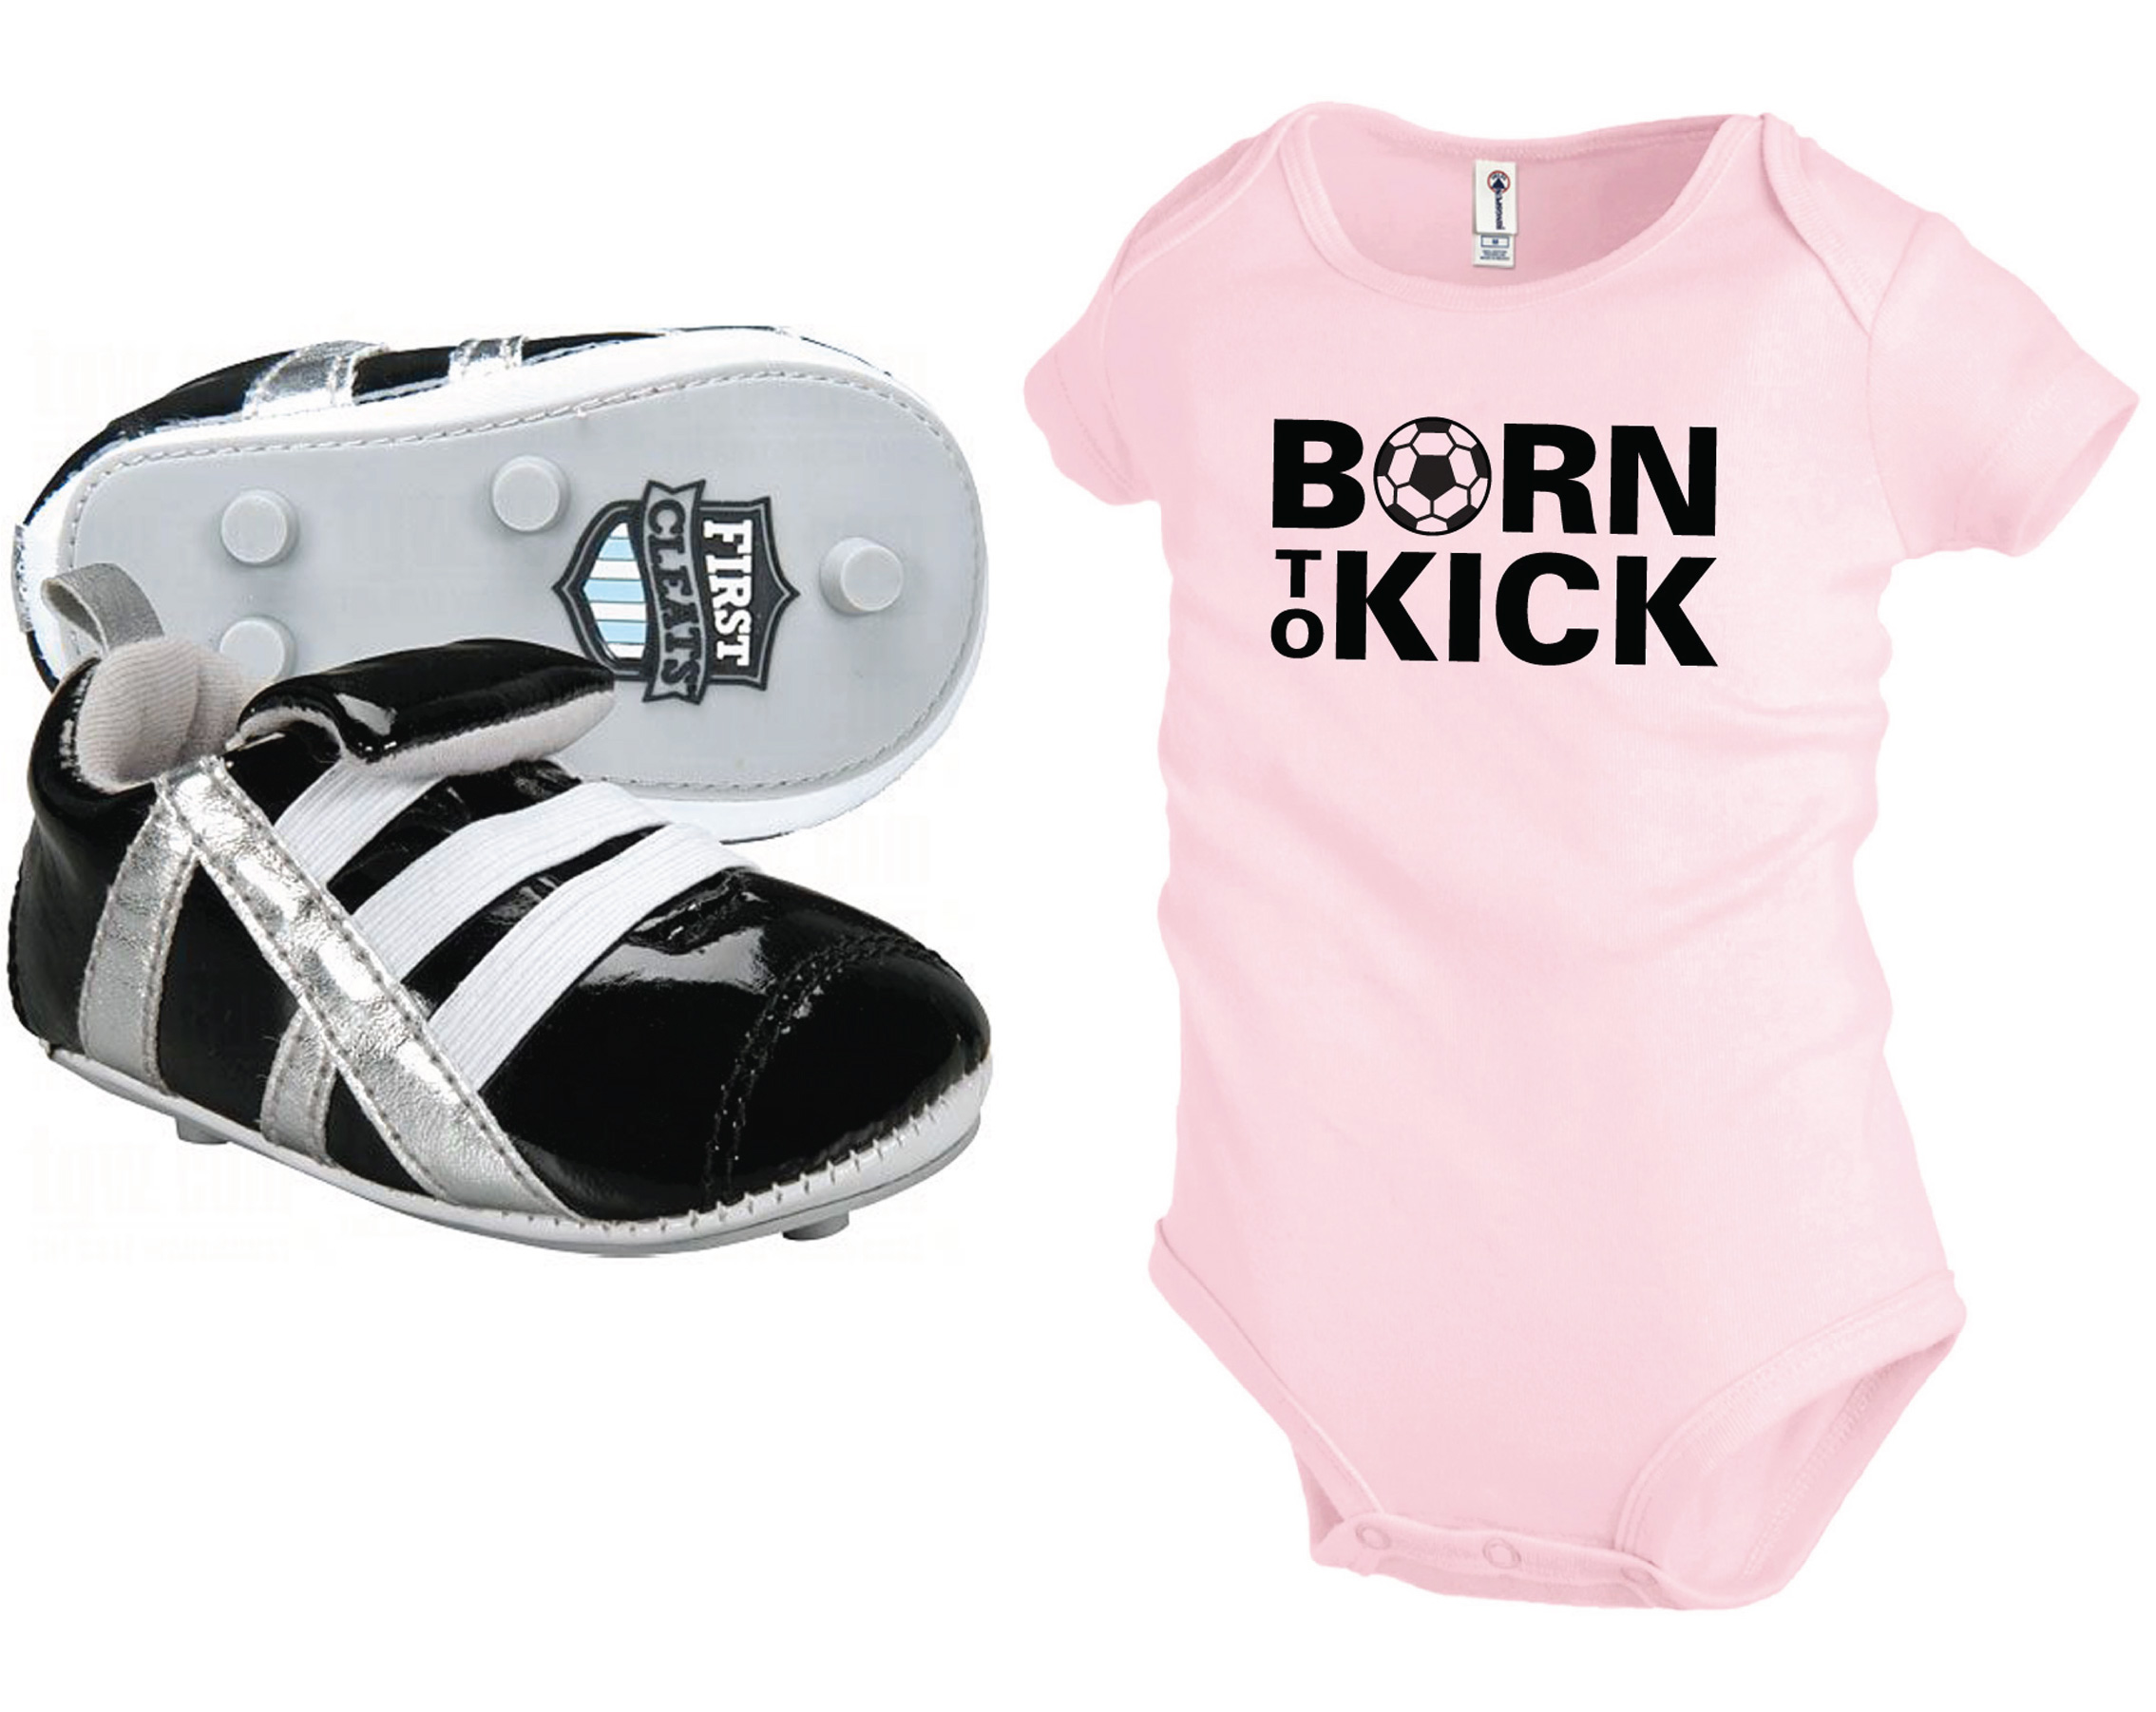 First Cleats newborn baby shoes with pink Born To Kick onesie by Code Four Athletics